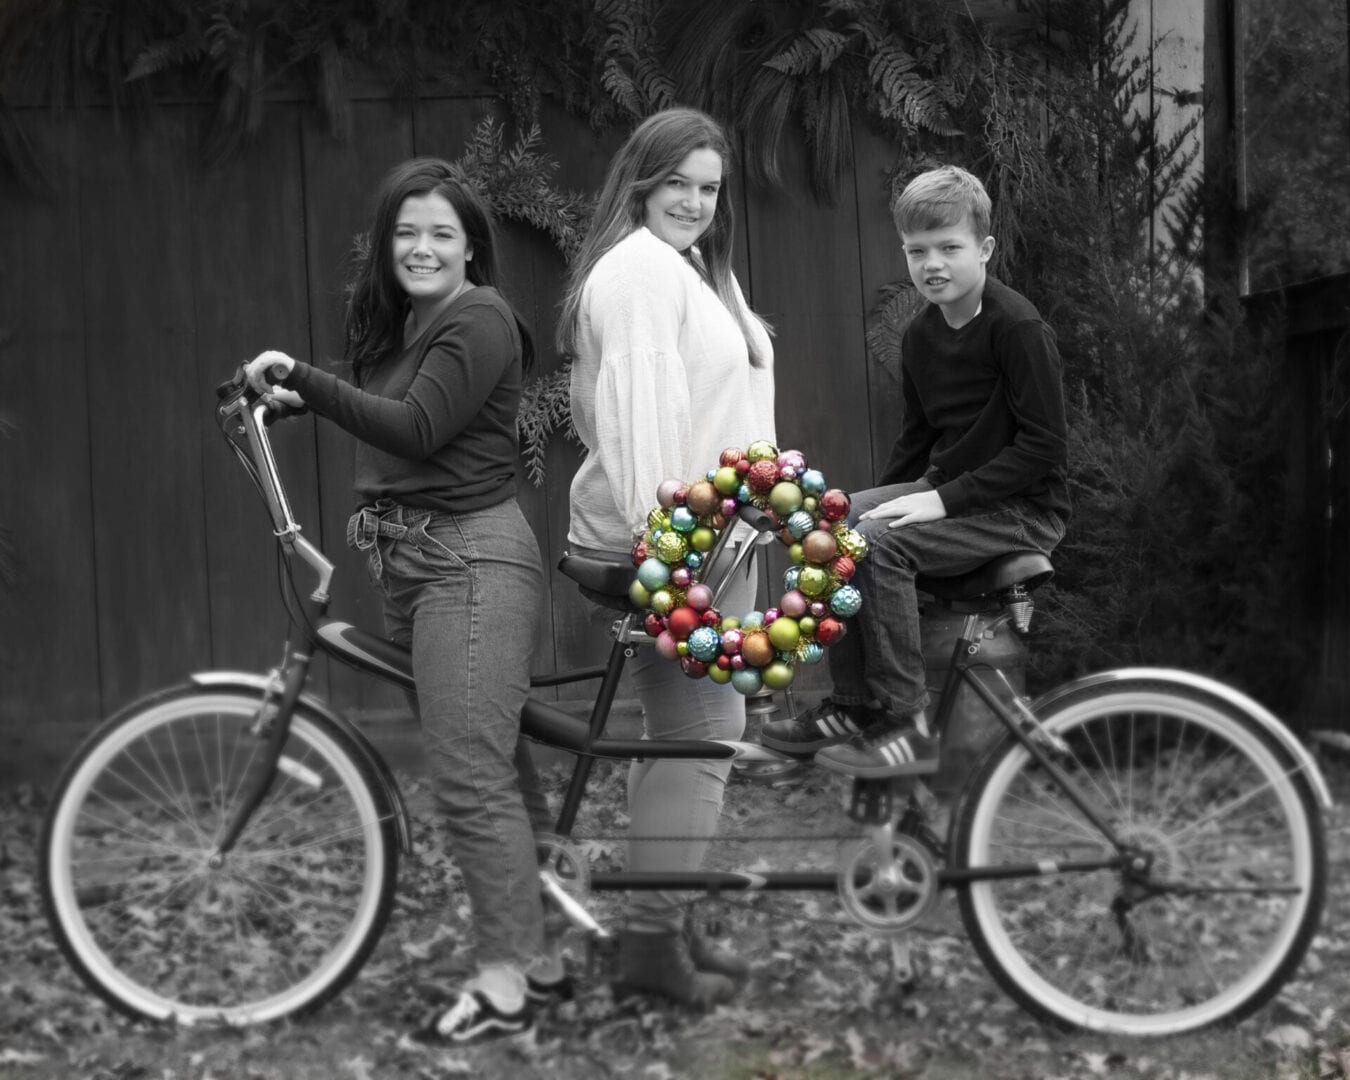 Leesburg Holiday photo sessions on old bike with wreath